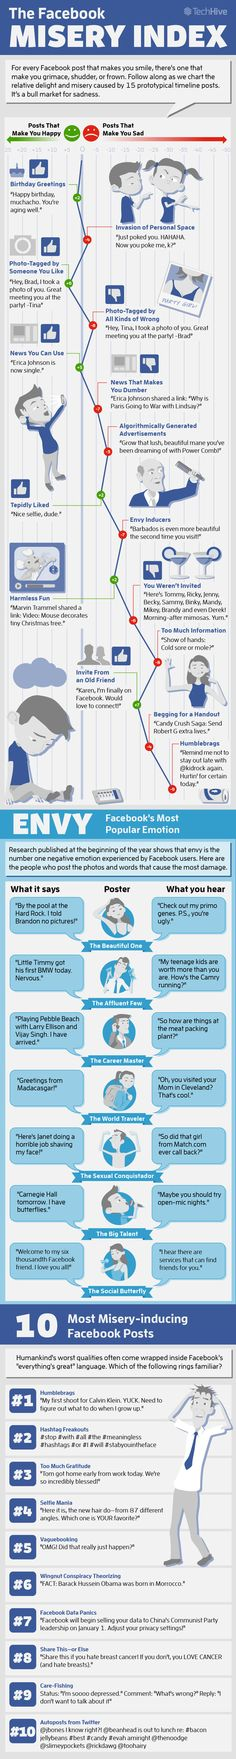 How Bad Facebook Makes You Feel - Facebook Misery Index [INFOGRAPHIC] #facebook #content